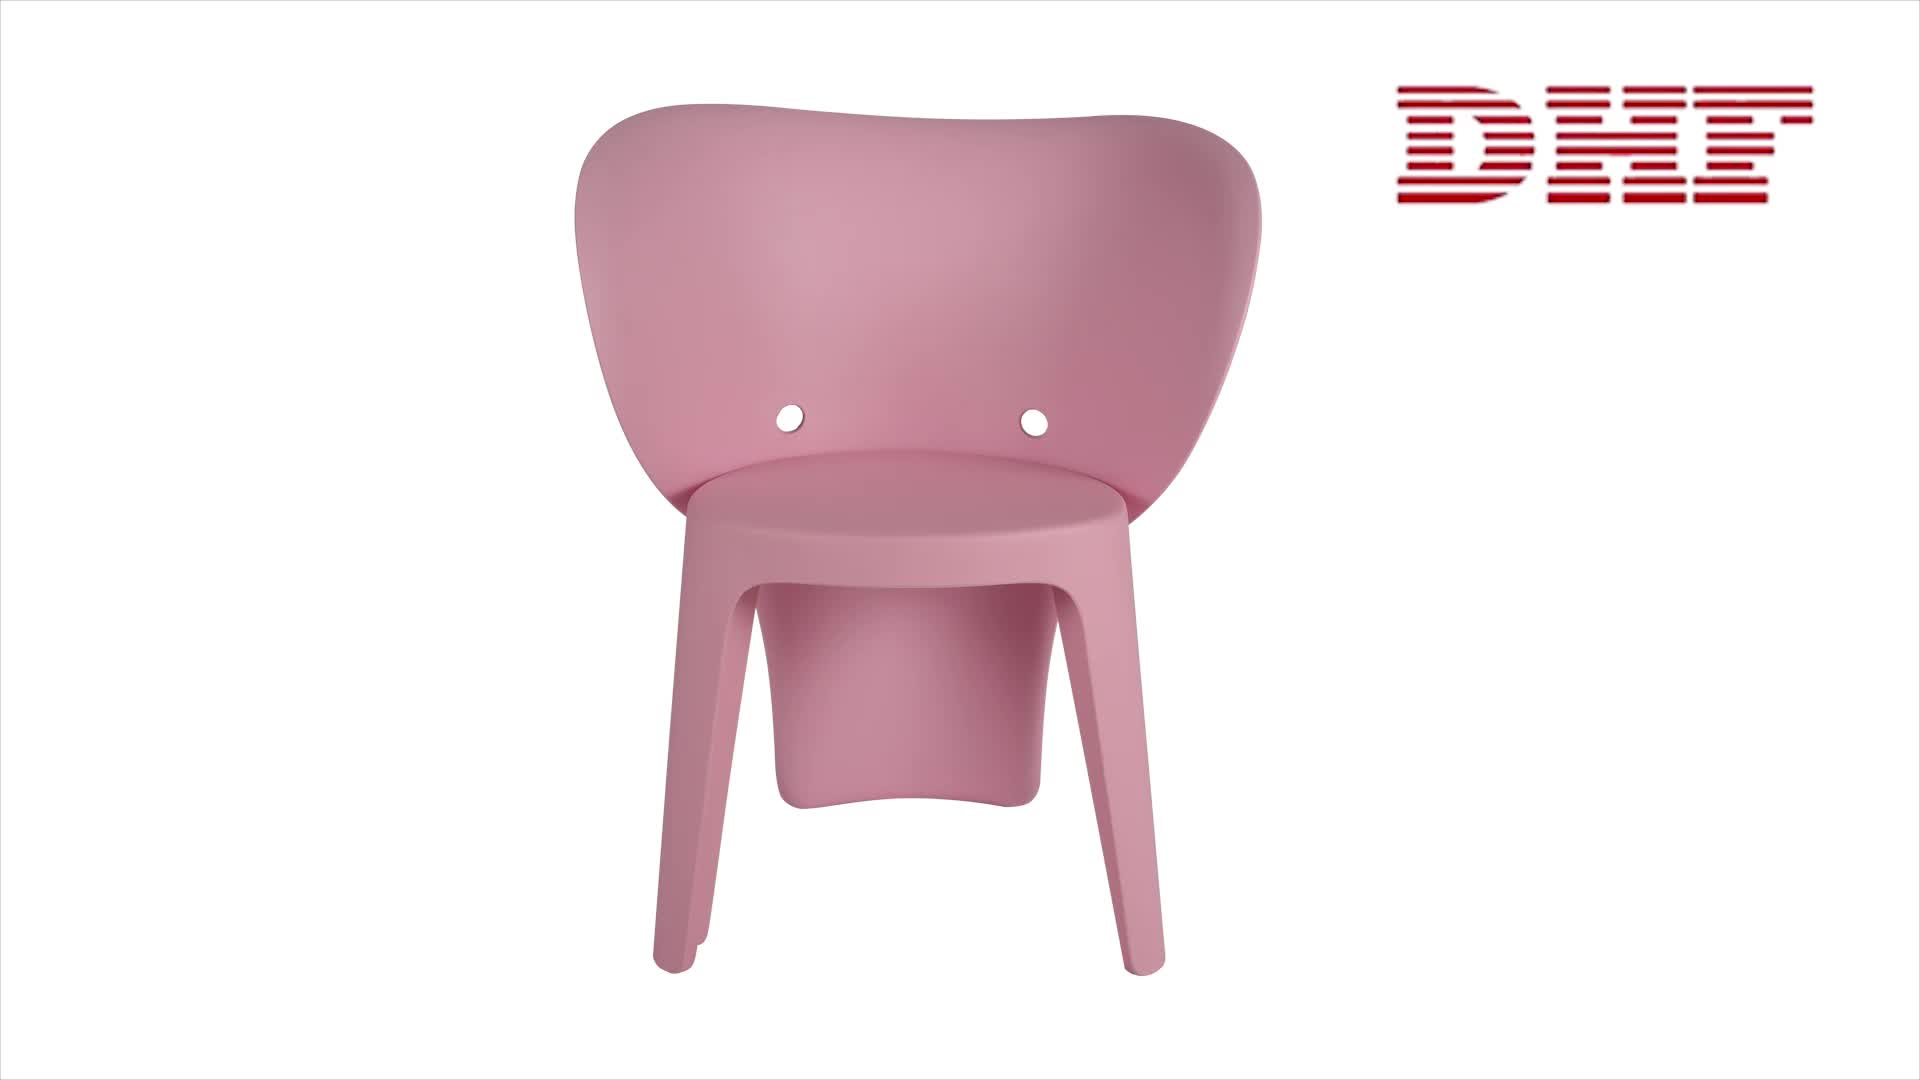 Plastic Kids Chairs Dhf Modern Comfortable Designer Children Plastic Kids Chairs Party Child Chair Buy Children Plastic Chair Plastic Kids Chair Child Chair Product On